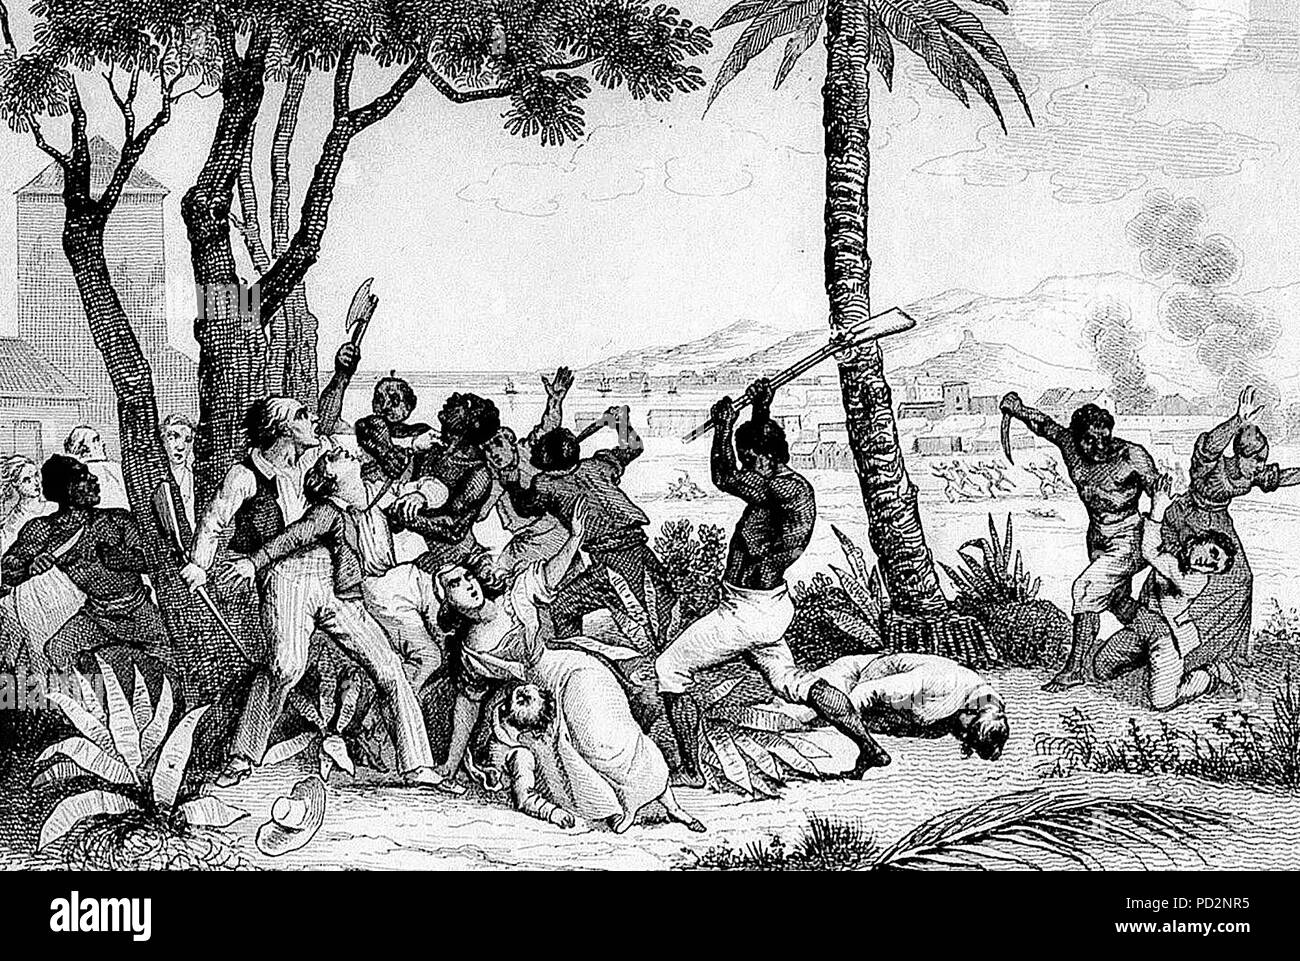 Slave rebellion of 1791 - Burning of the Plaine du Cap - Massacre of whites by the blacks'. On August 22 1791, slaves set fire to plantations, torched cities and massacred the white population. - Stock Image